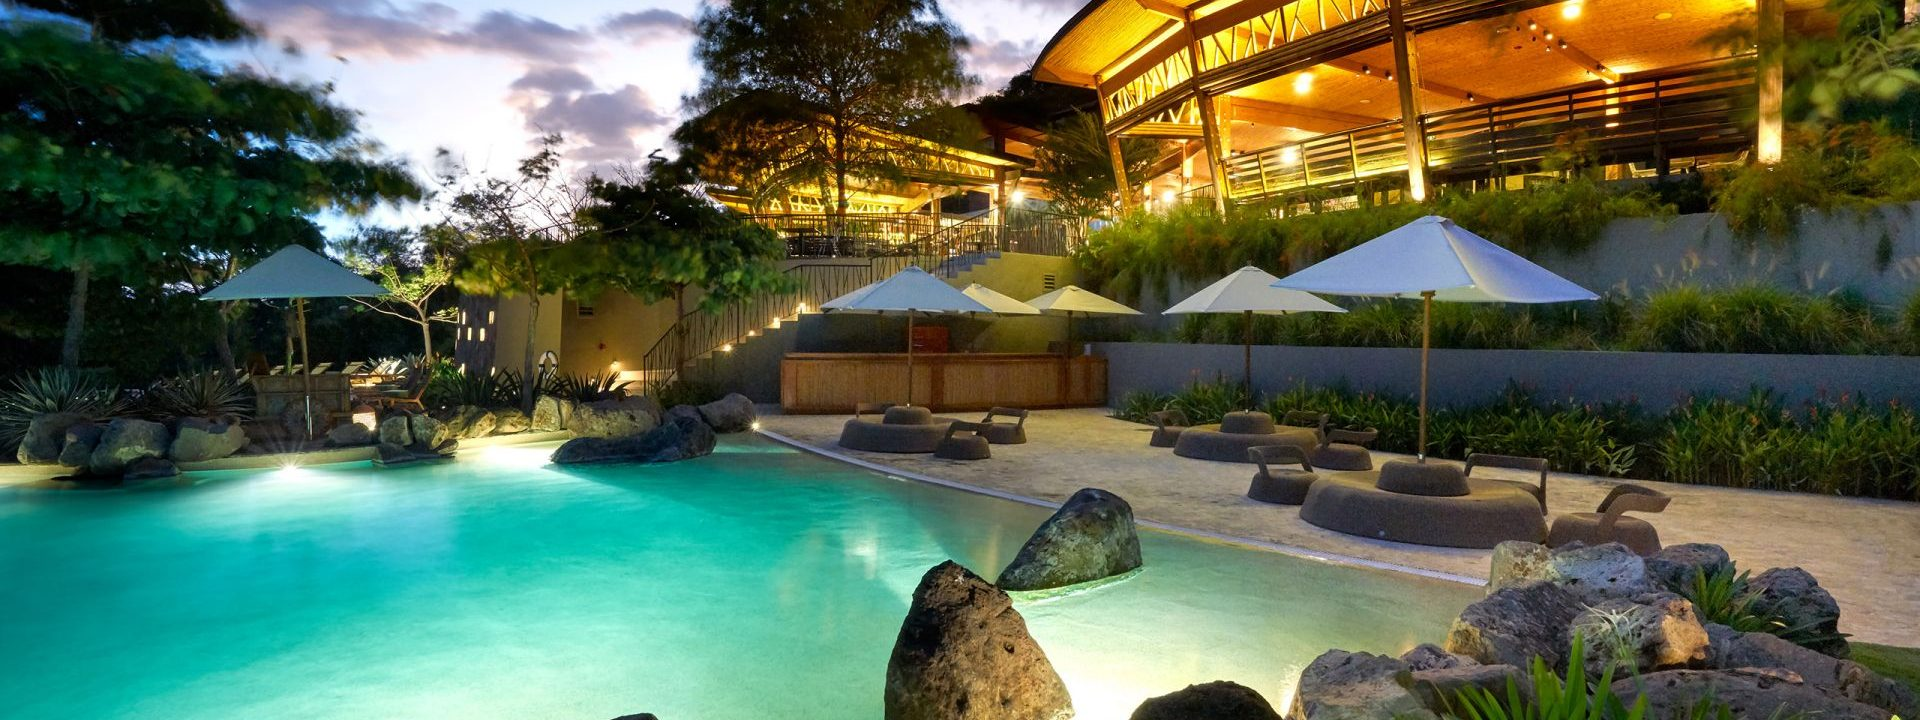 Andaz Costa Rica at Peninsula Papagayo is a chic celebrity sanctuary